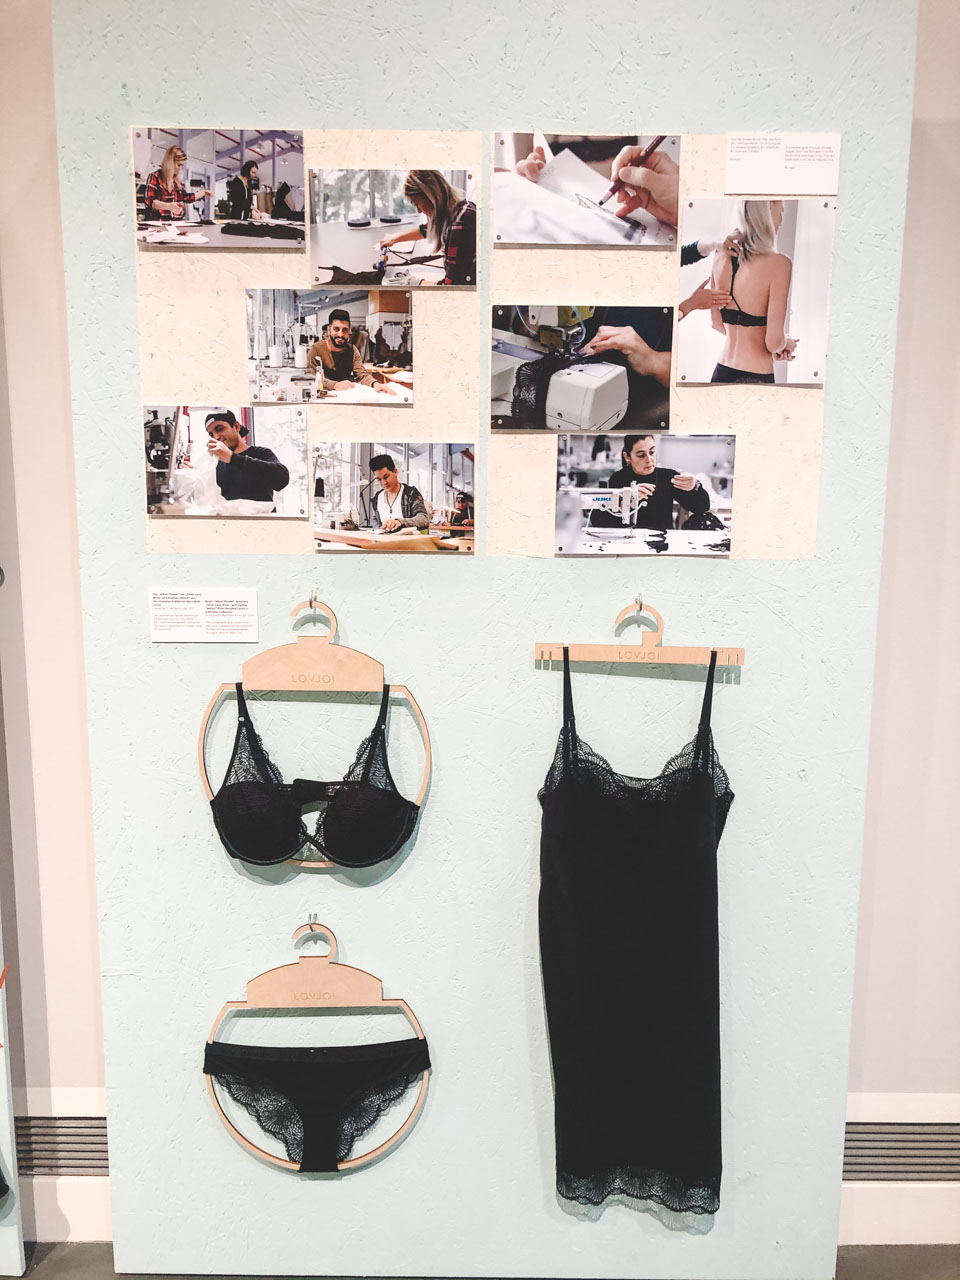 Sustainable lingerie on display at the Museum of European Cultures in Berlin